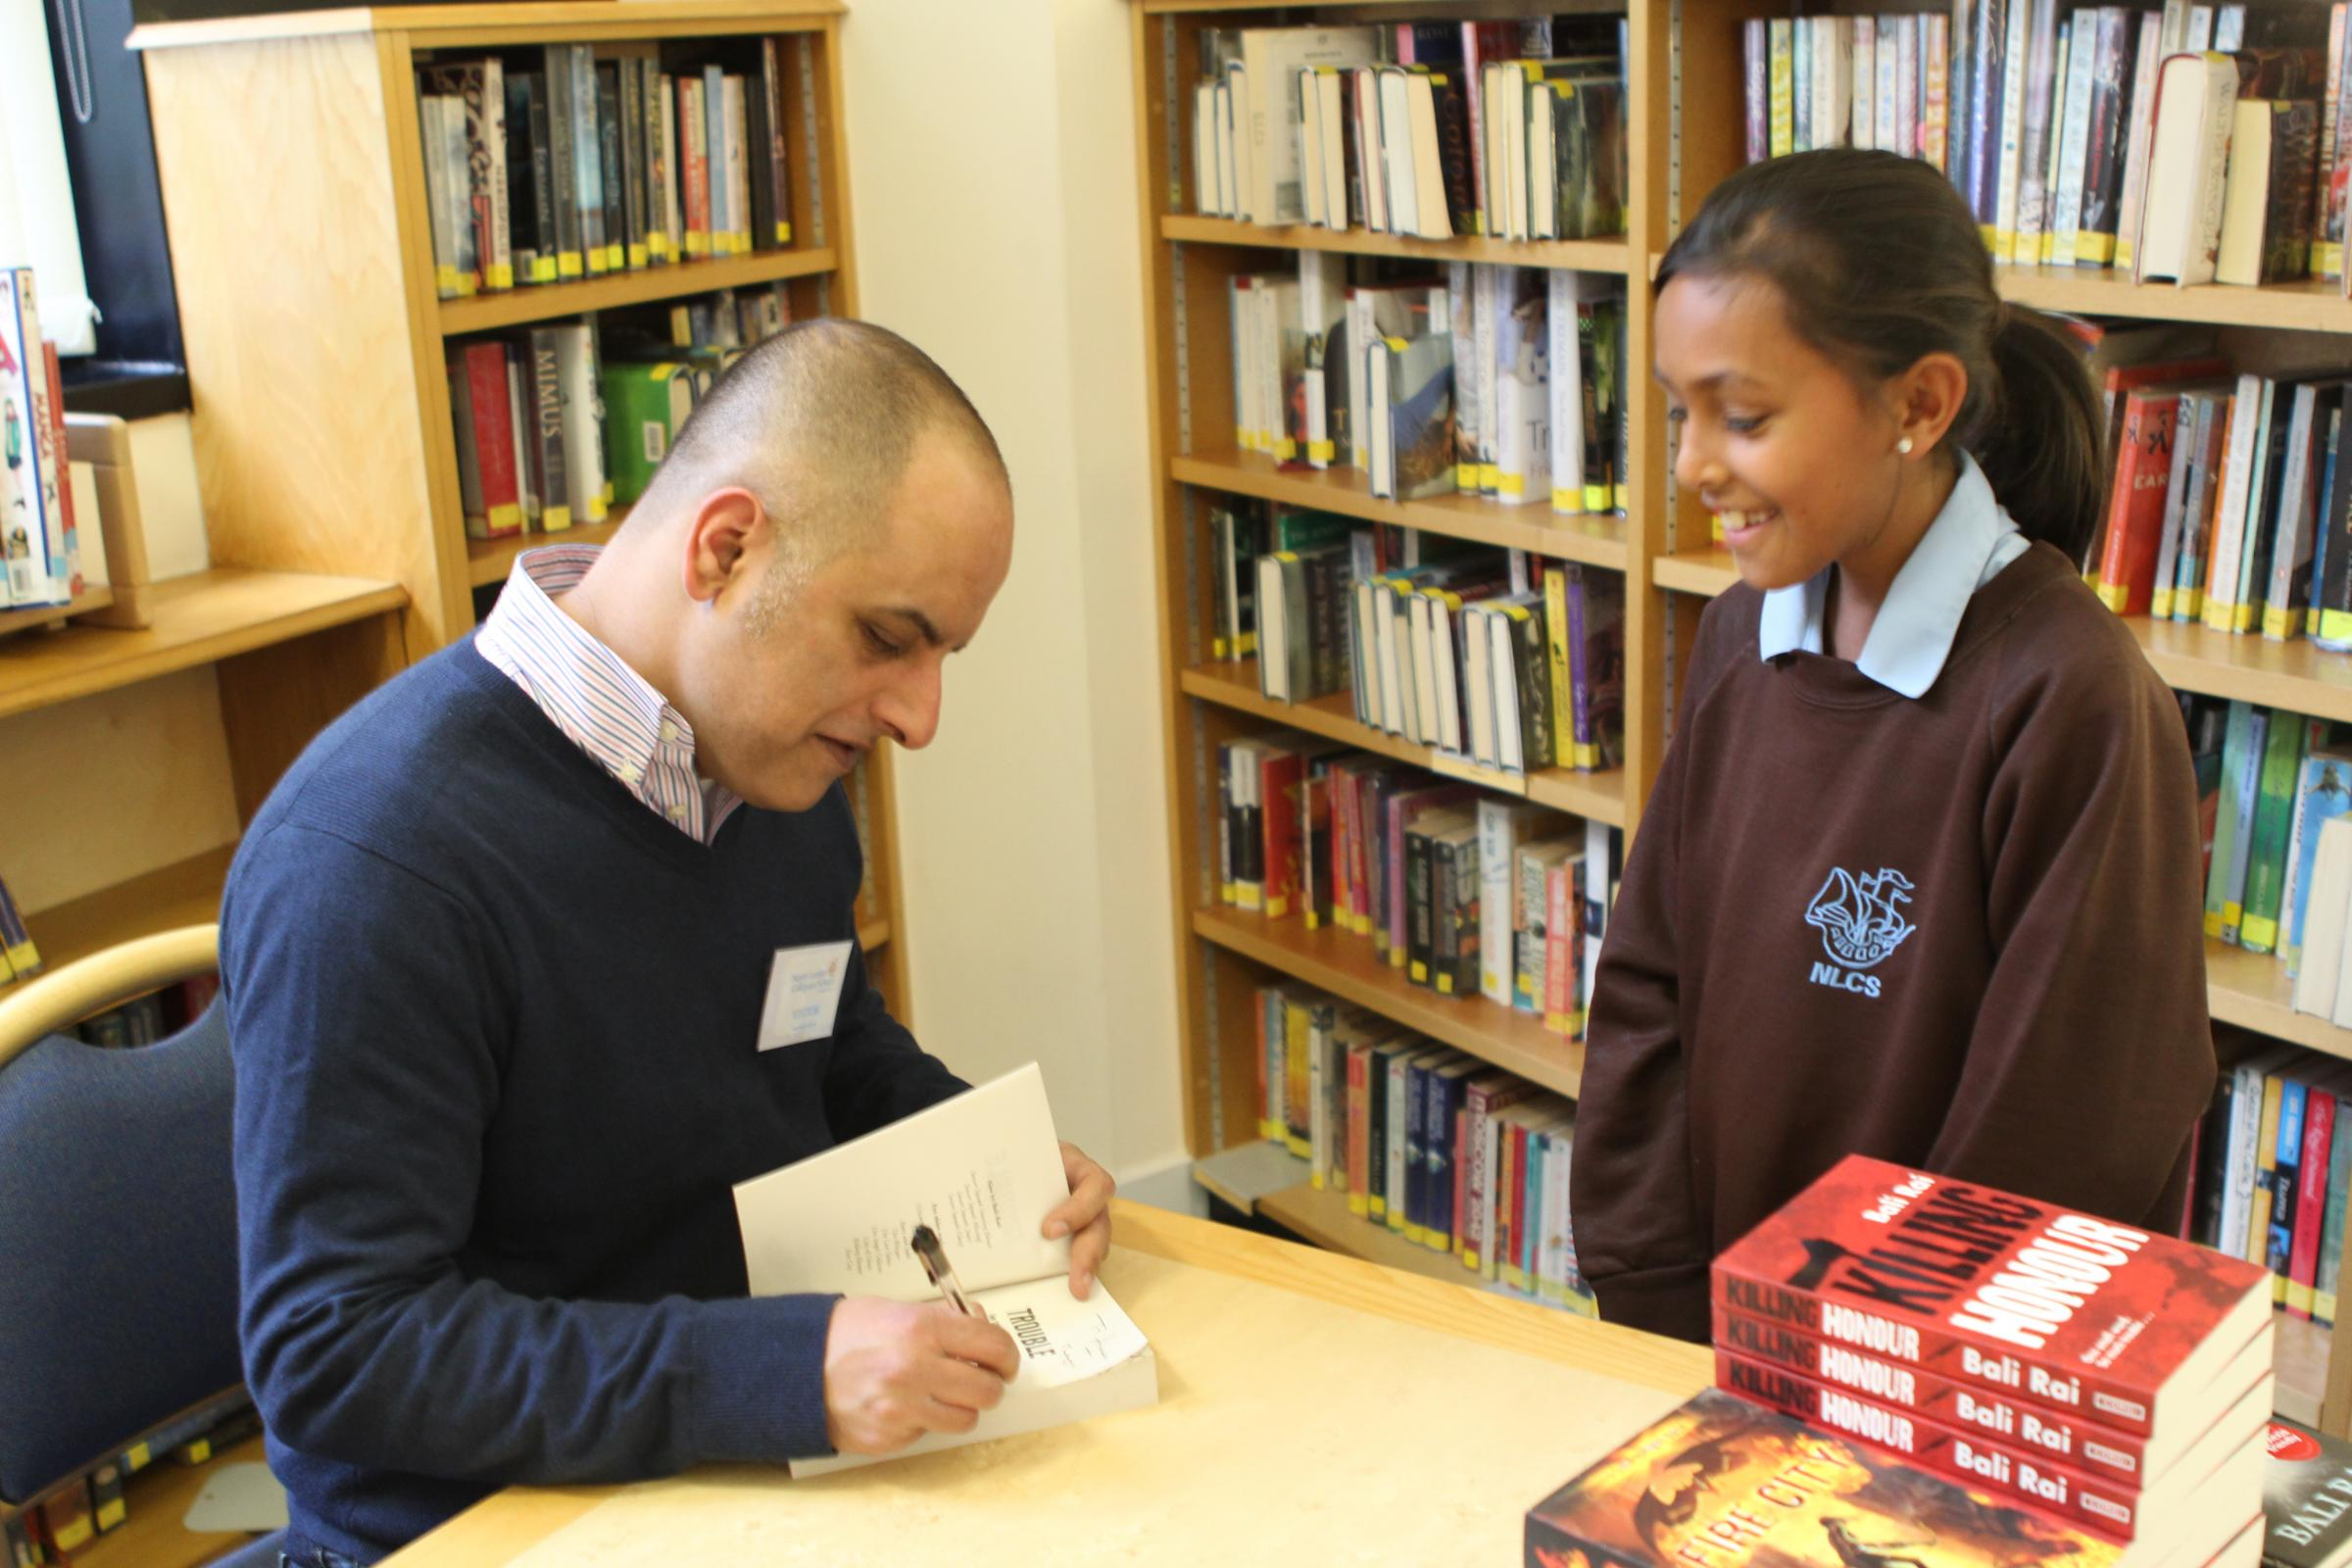 Author visits school to inspire pupils